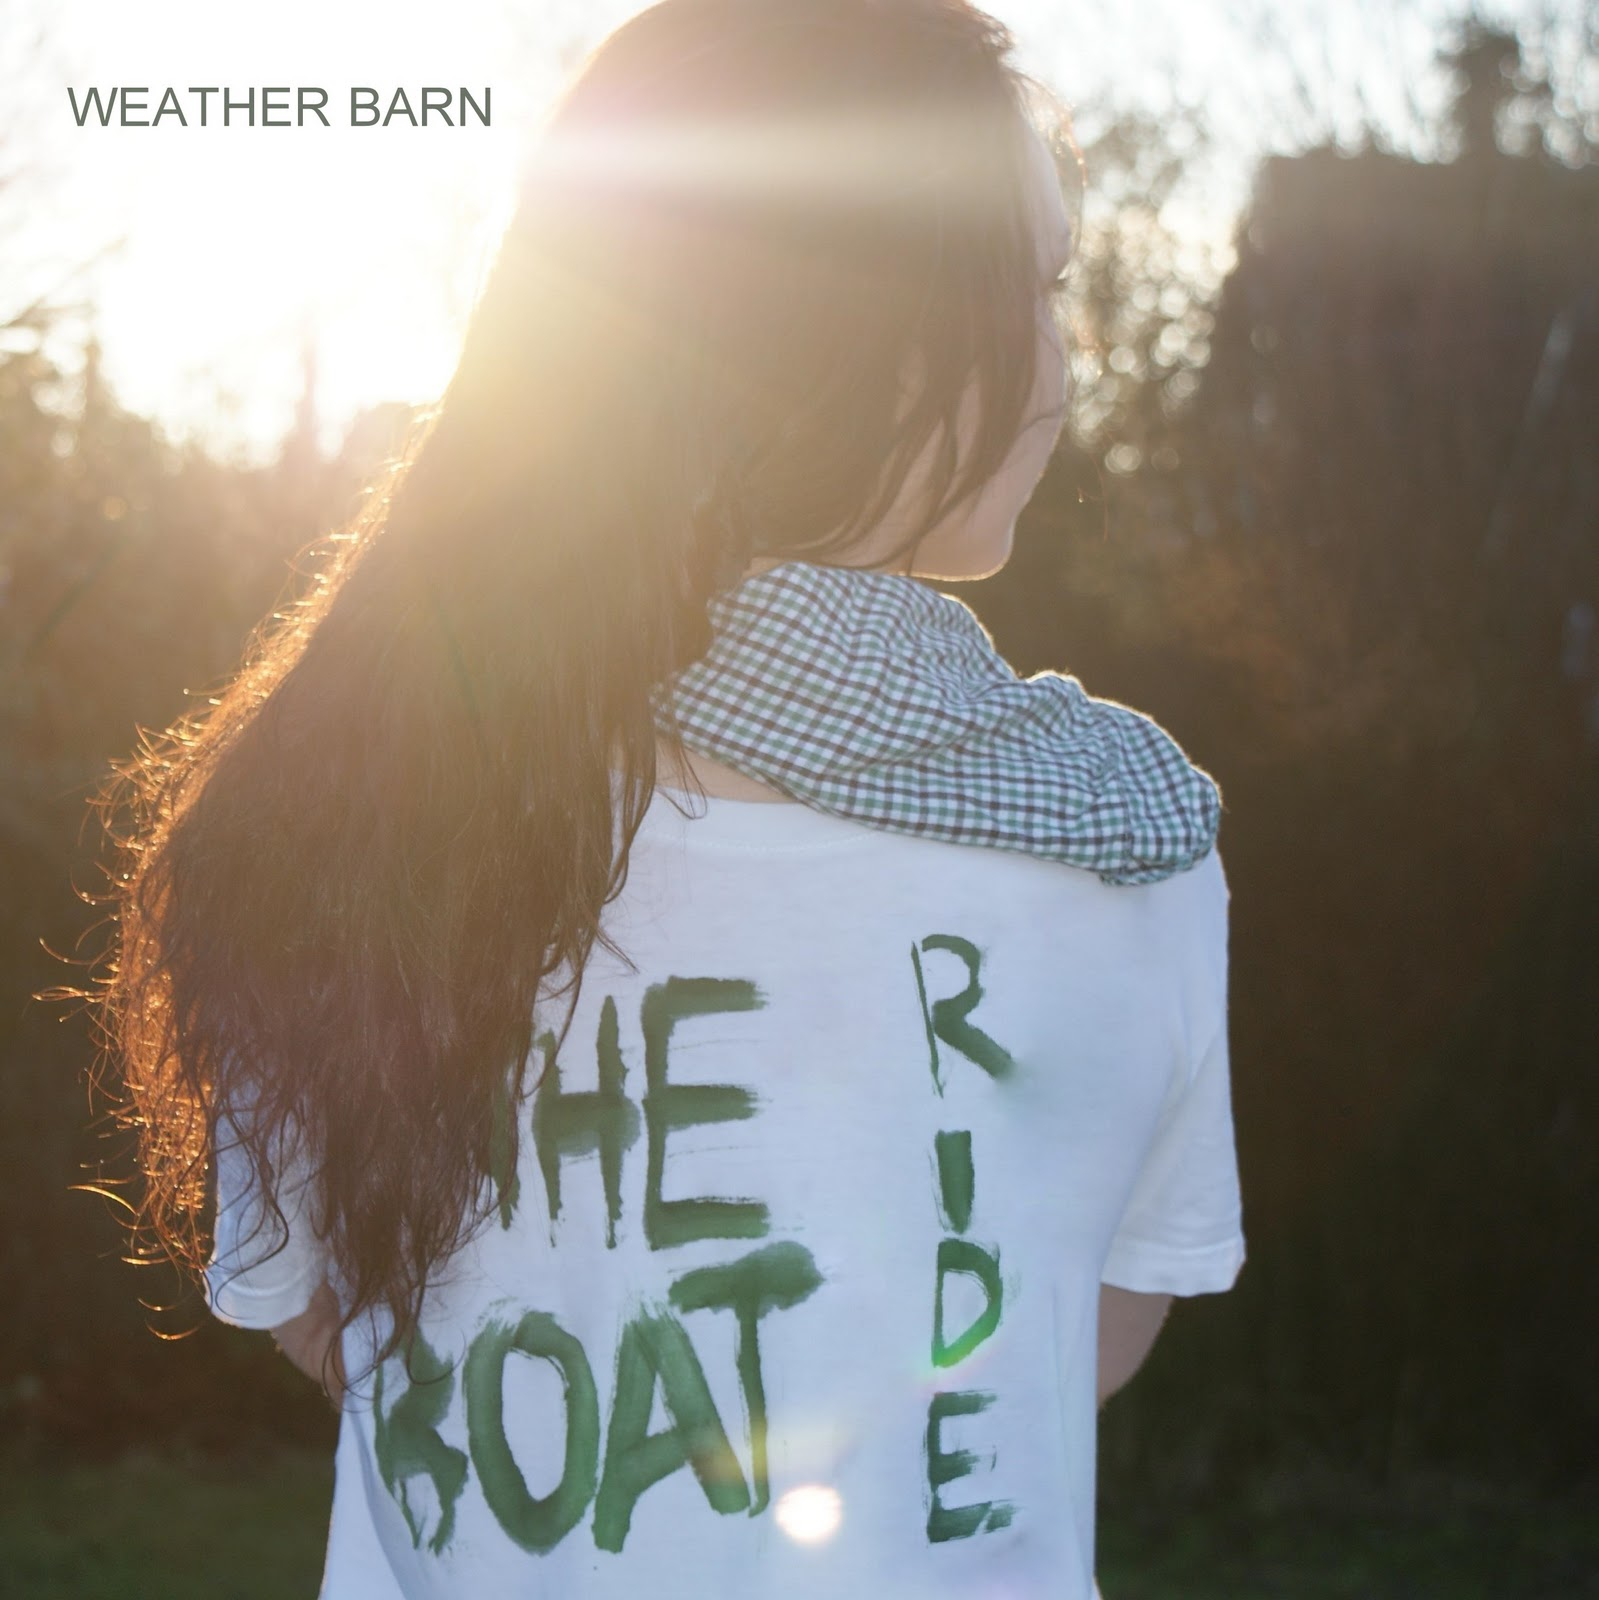 Weather Barn - The Boat Ride